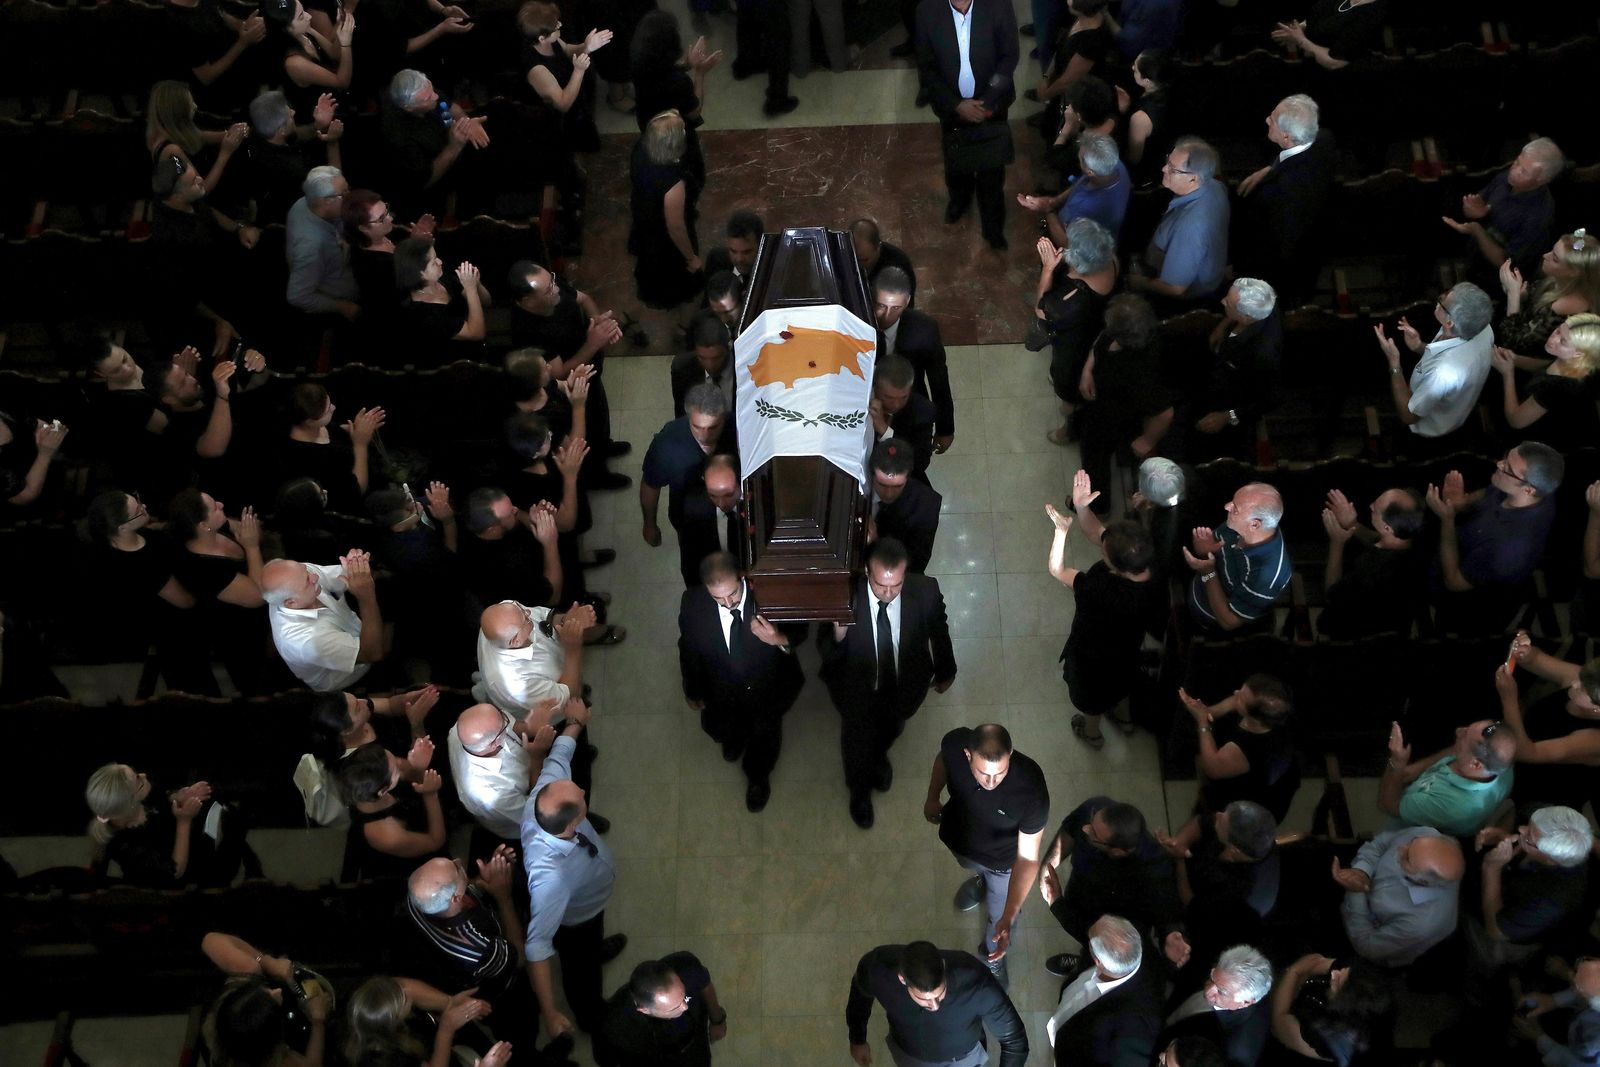 Pallbearers carry the coffin of the former Cyprus' President Dimitris Christofias during his state funeral at the Orthodox Christian Church of the Lord's Wisdom in capital Nicosia, Cyprus, Tuesday, June 25, 2019. European communist and left-wing party heads and leaders from ethnically split Cyprus' breakaway Turkish Cypriot community were among those attending a funeral service for the country's former president Christofias. (AP Photo/Petros Karadjias)